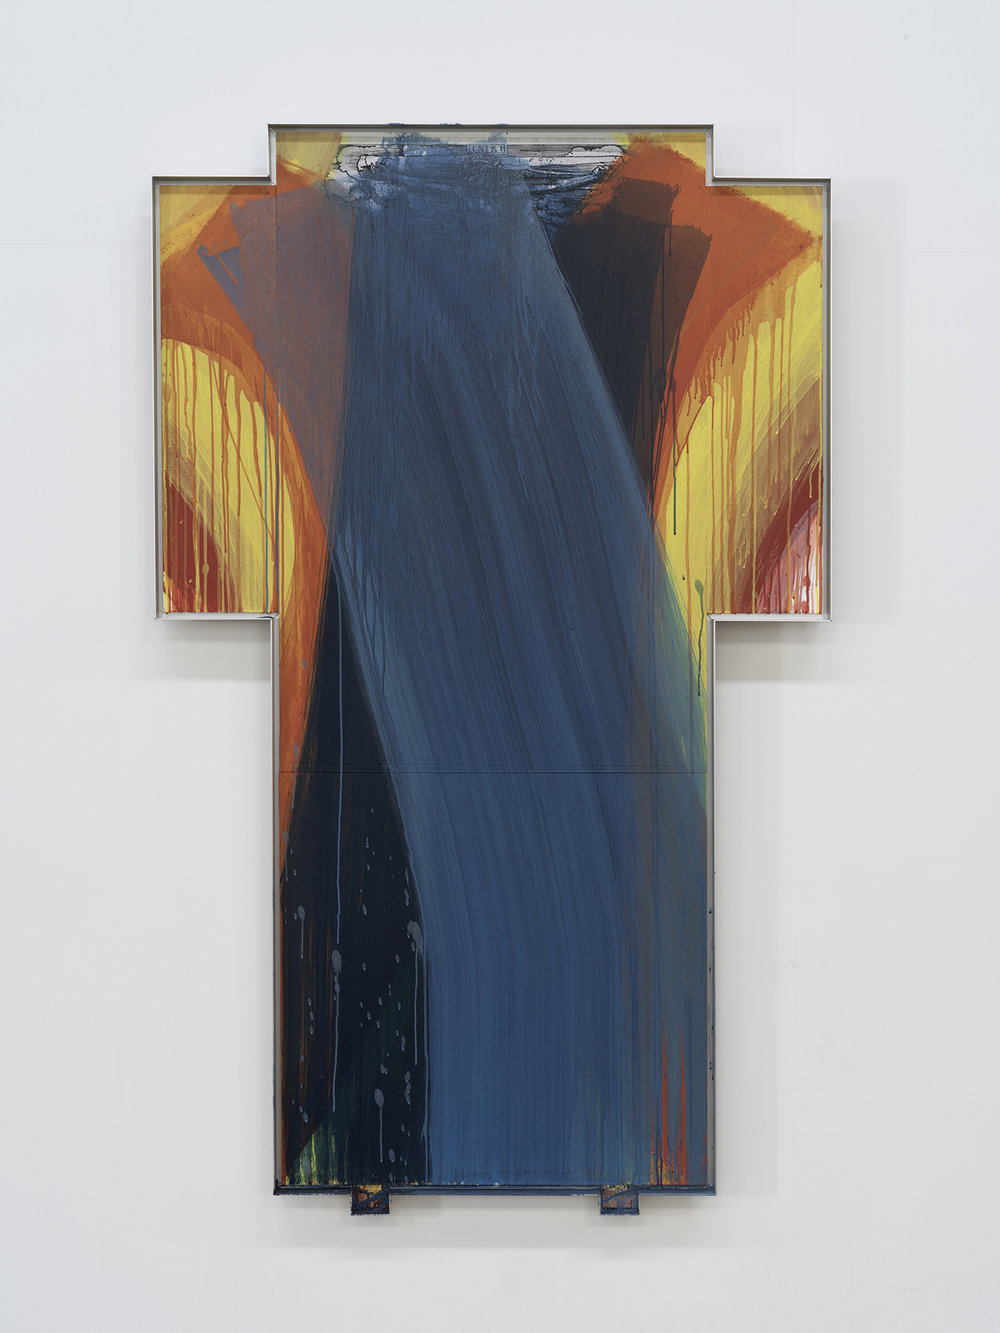 Arnulf Rainer,  Kreuz, 'Cranachkreuz II' (Cross, 'Cranach Cross II') , 1999/2000. Photo: John Berens